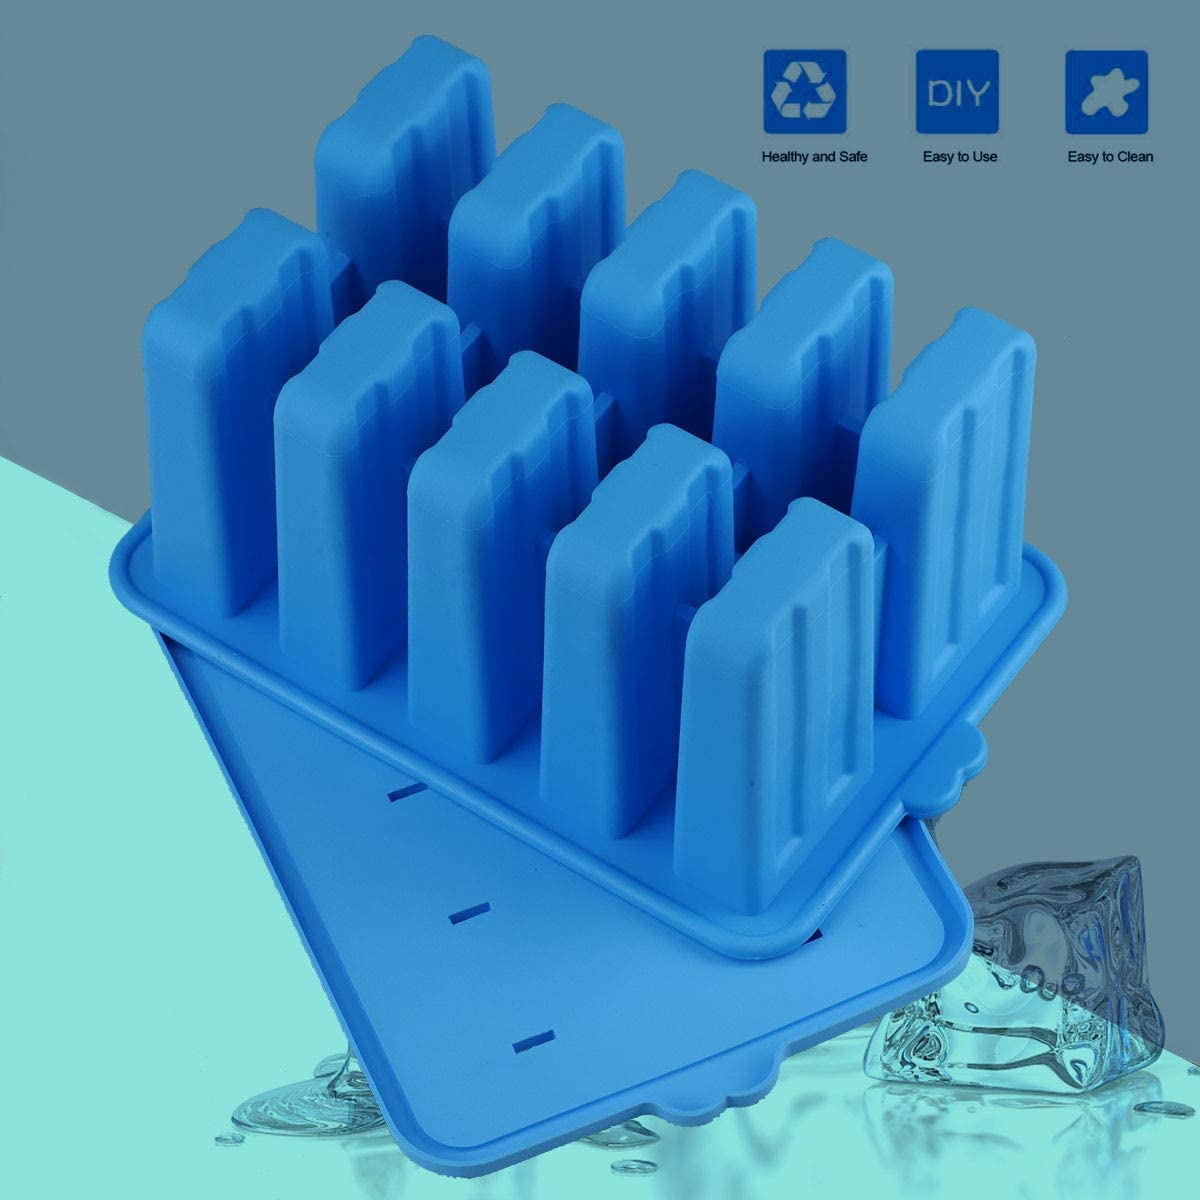 Homemade Silicone Popsicle Molds,BPA Free Popcylce Molds,Reusable Popsicle Mold for Kids,Ice Cream Mold,Ice Pop Molds Maker with 50 Popsicles Sticks,50 Popsicle Bags,Cleansing Brush,Funnel Blue